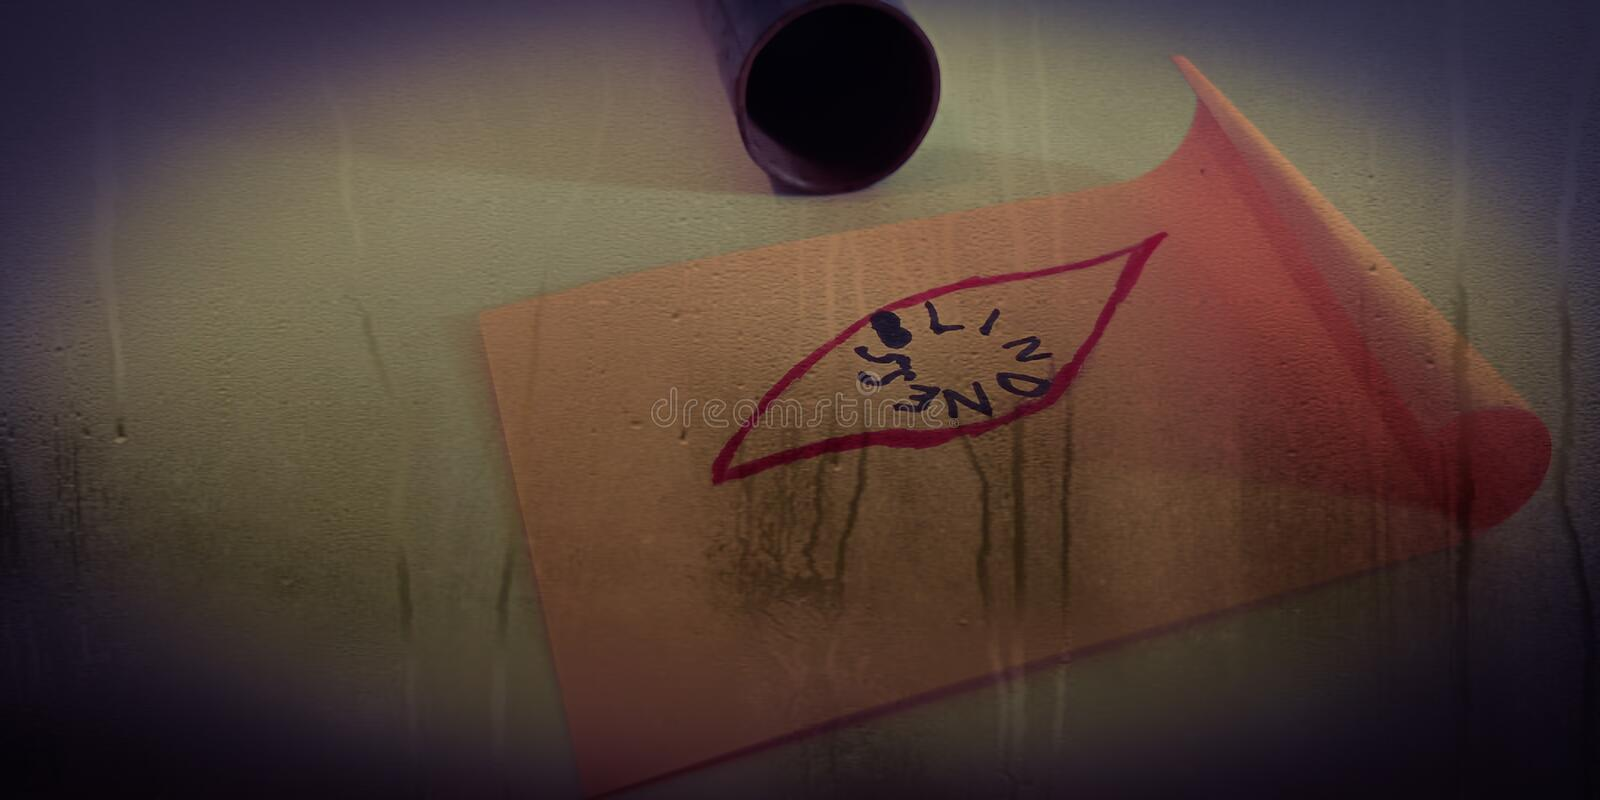 blindness word written under eye shape diagram on water steam abstract background royalty free stock photo